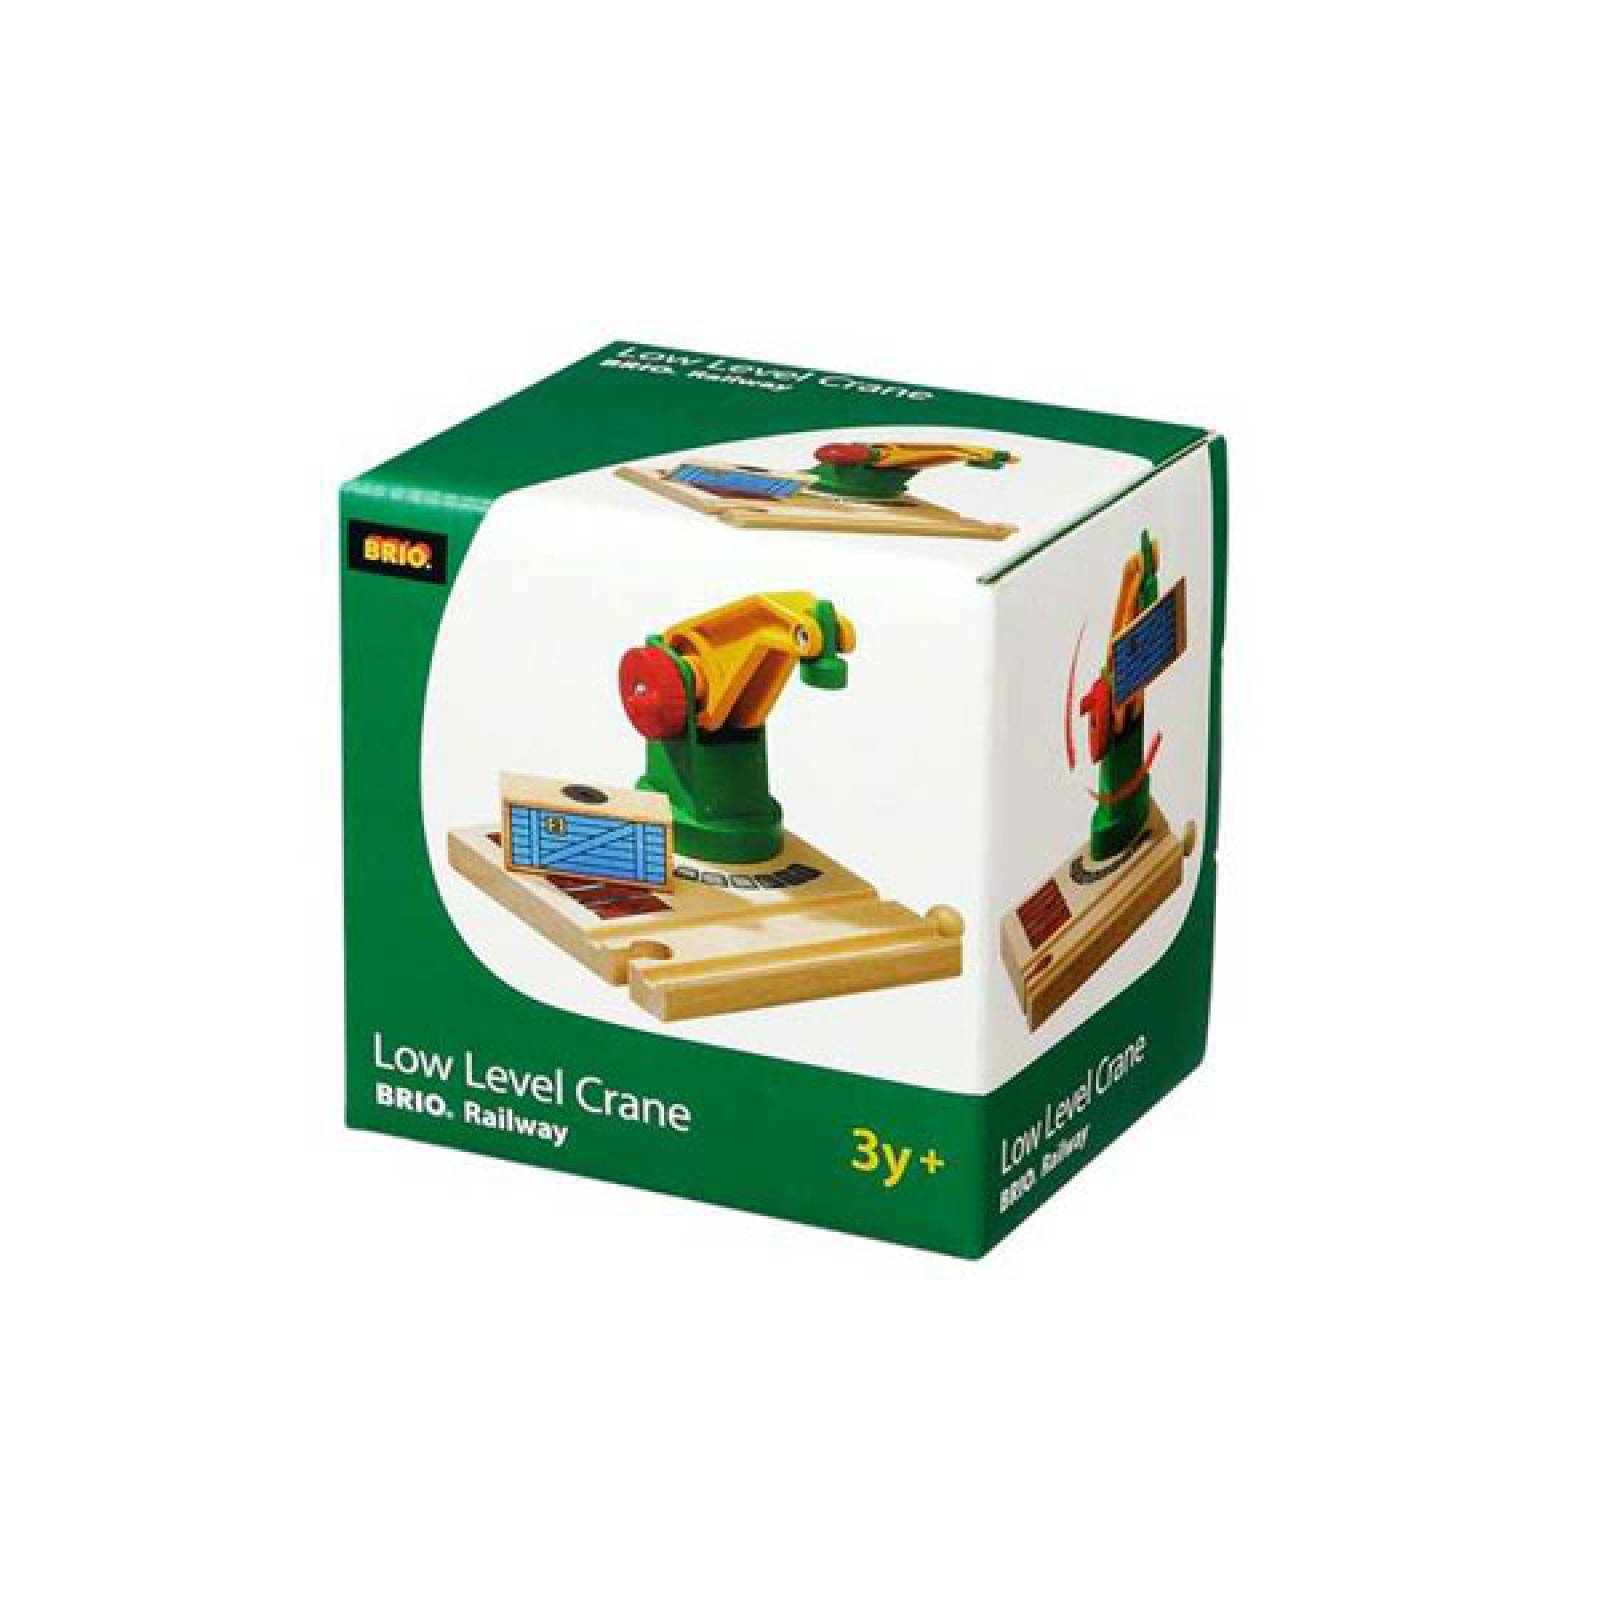 Low Level Crane  BRIO Wooden Railway Age 3+ thumbnails